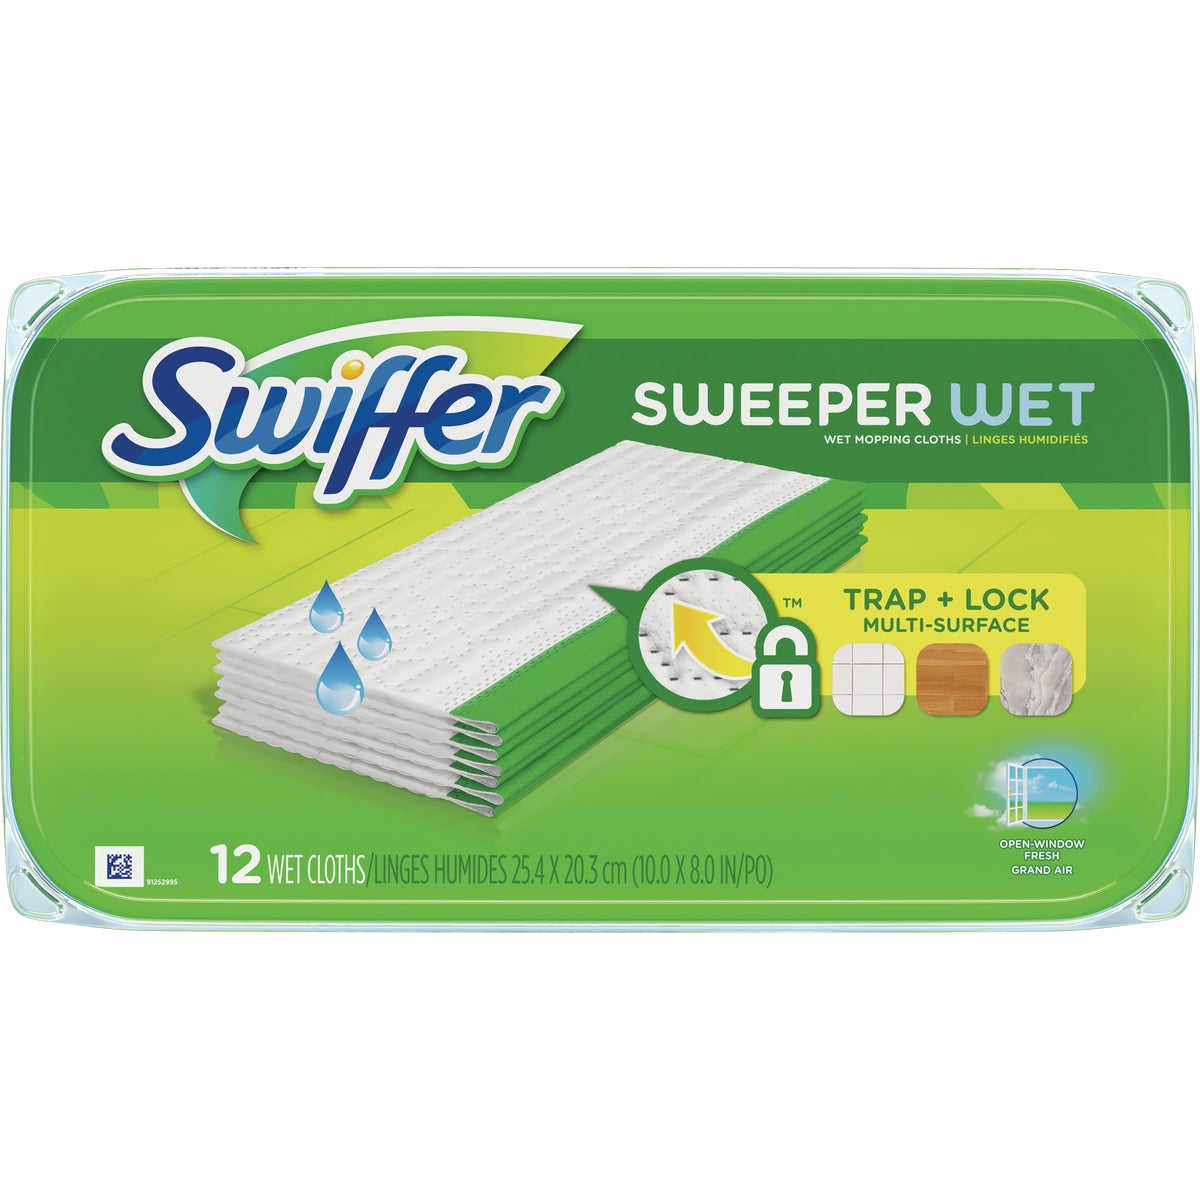 12CT SWIFFER WET CLOTHS